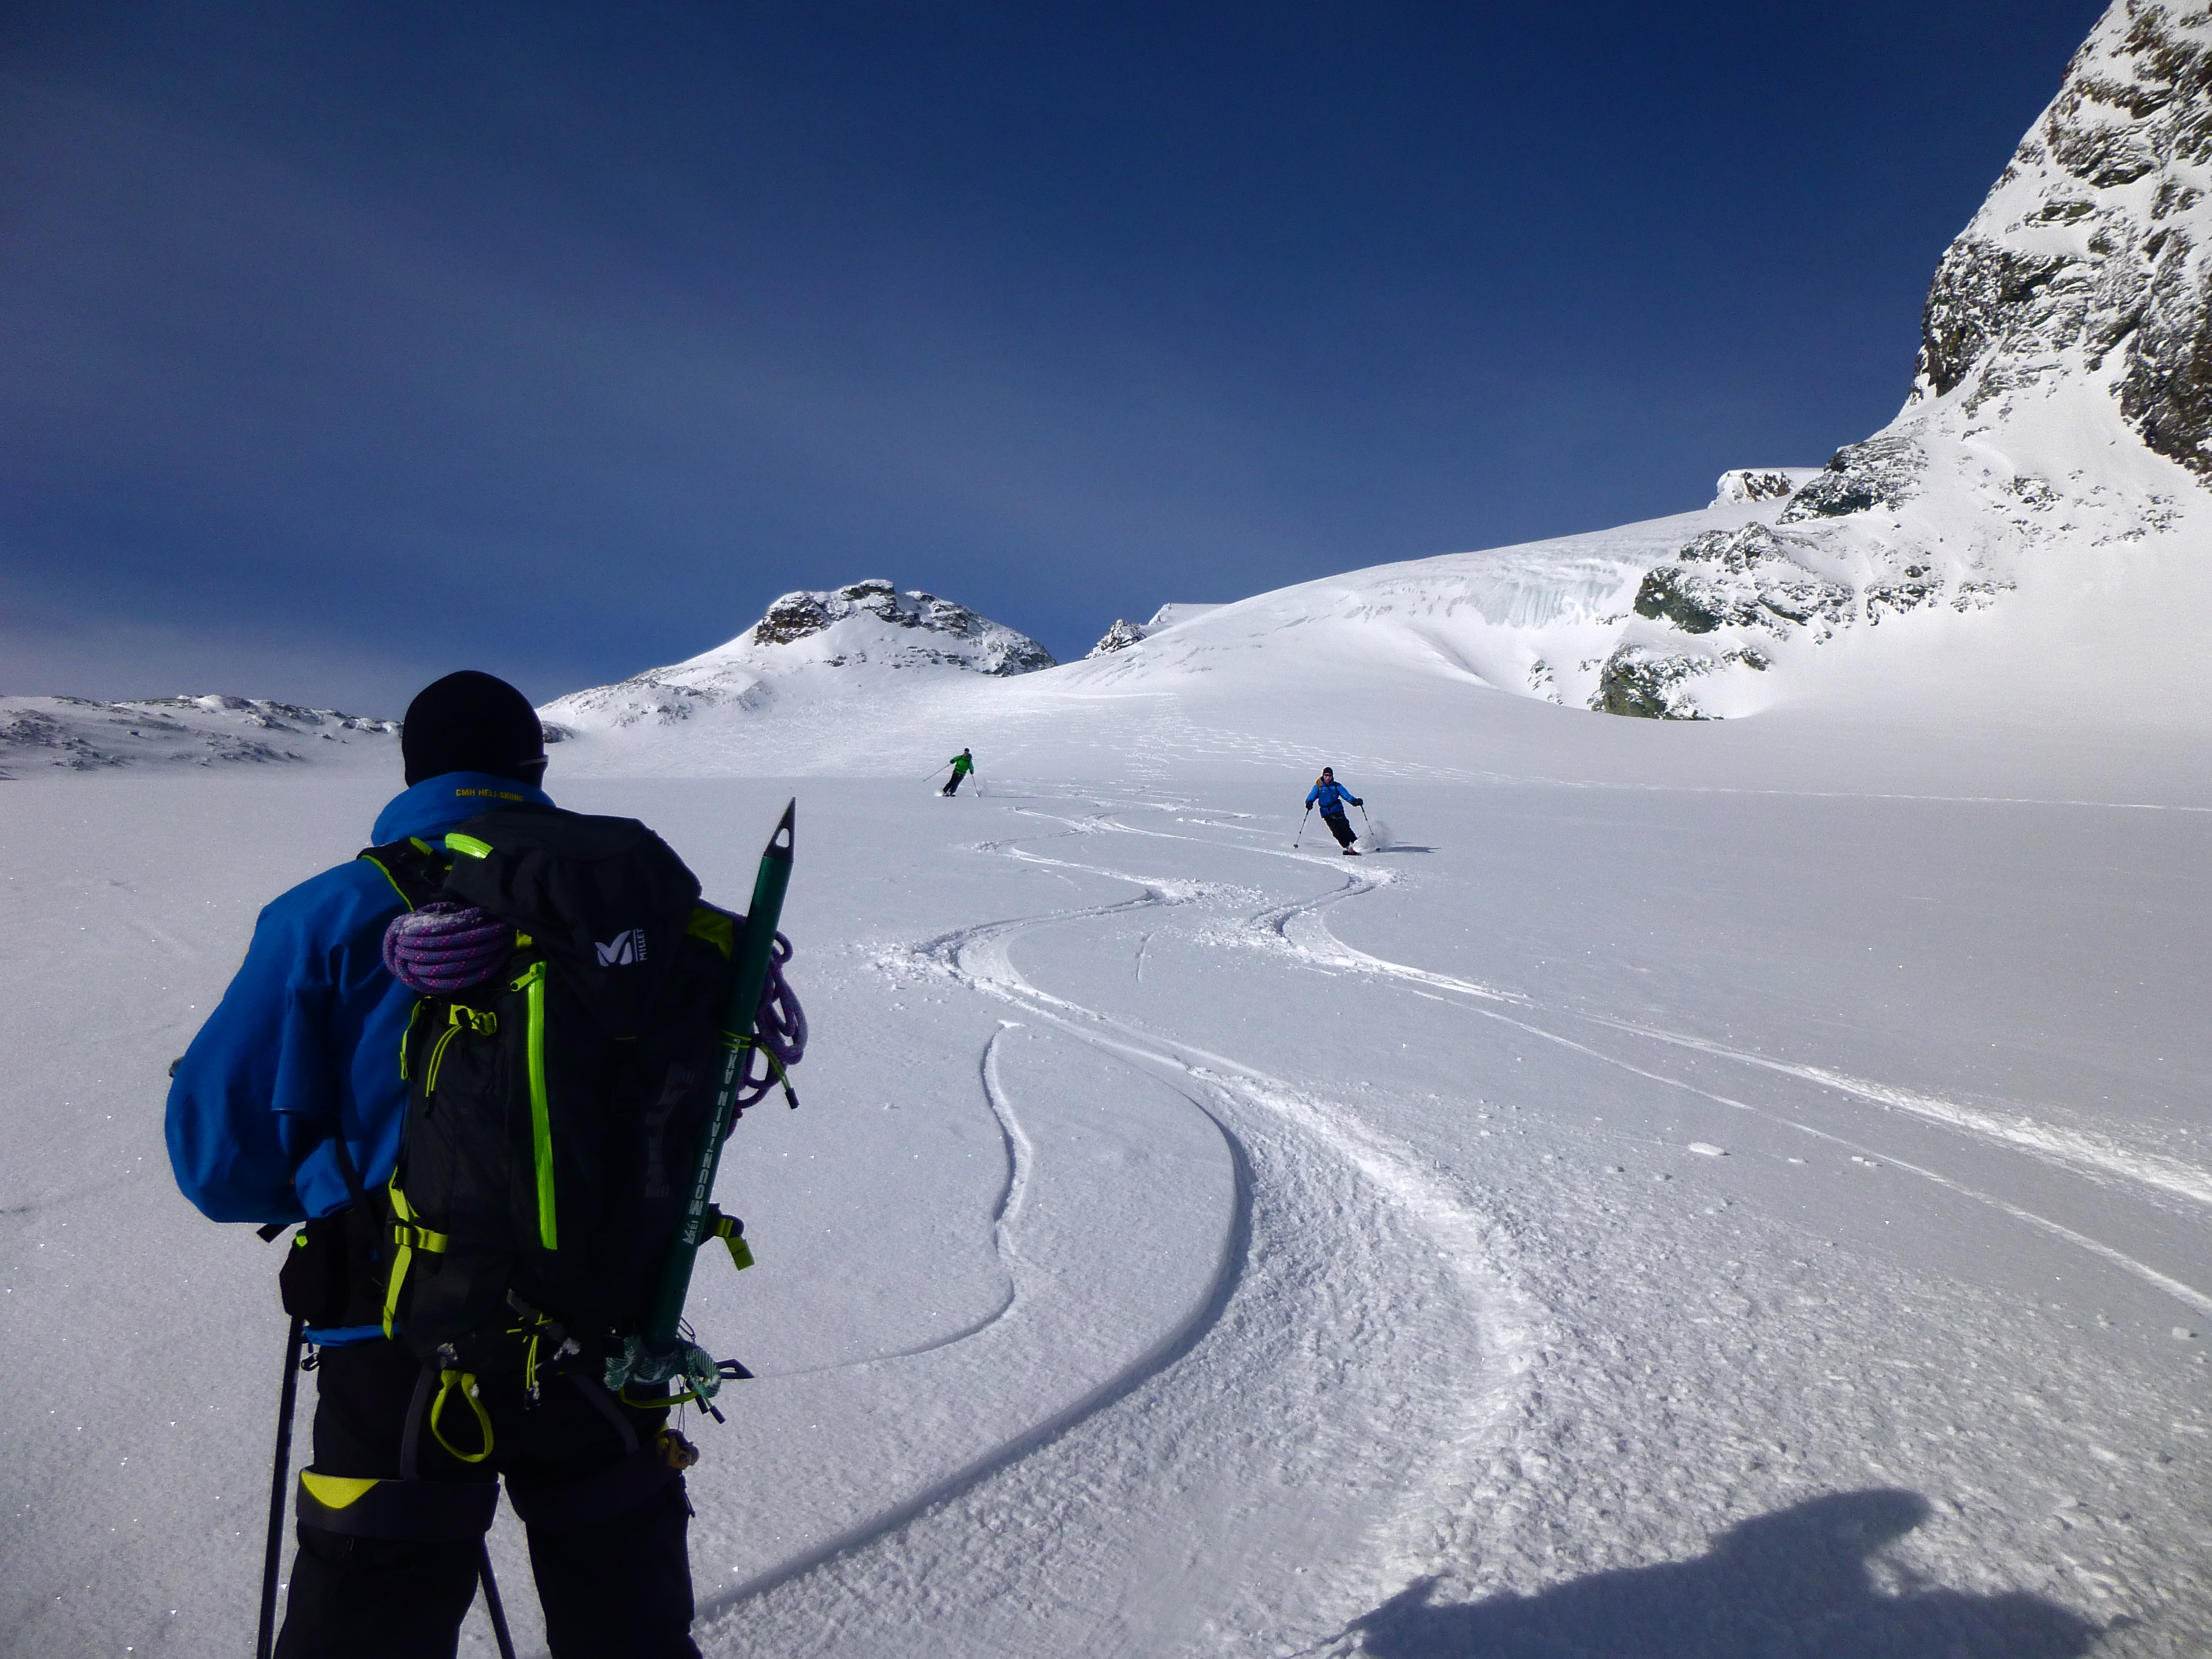 Smooth turns down the Haute Glacier d'Arolla